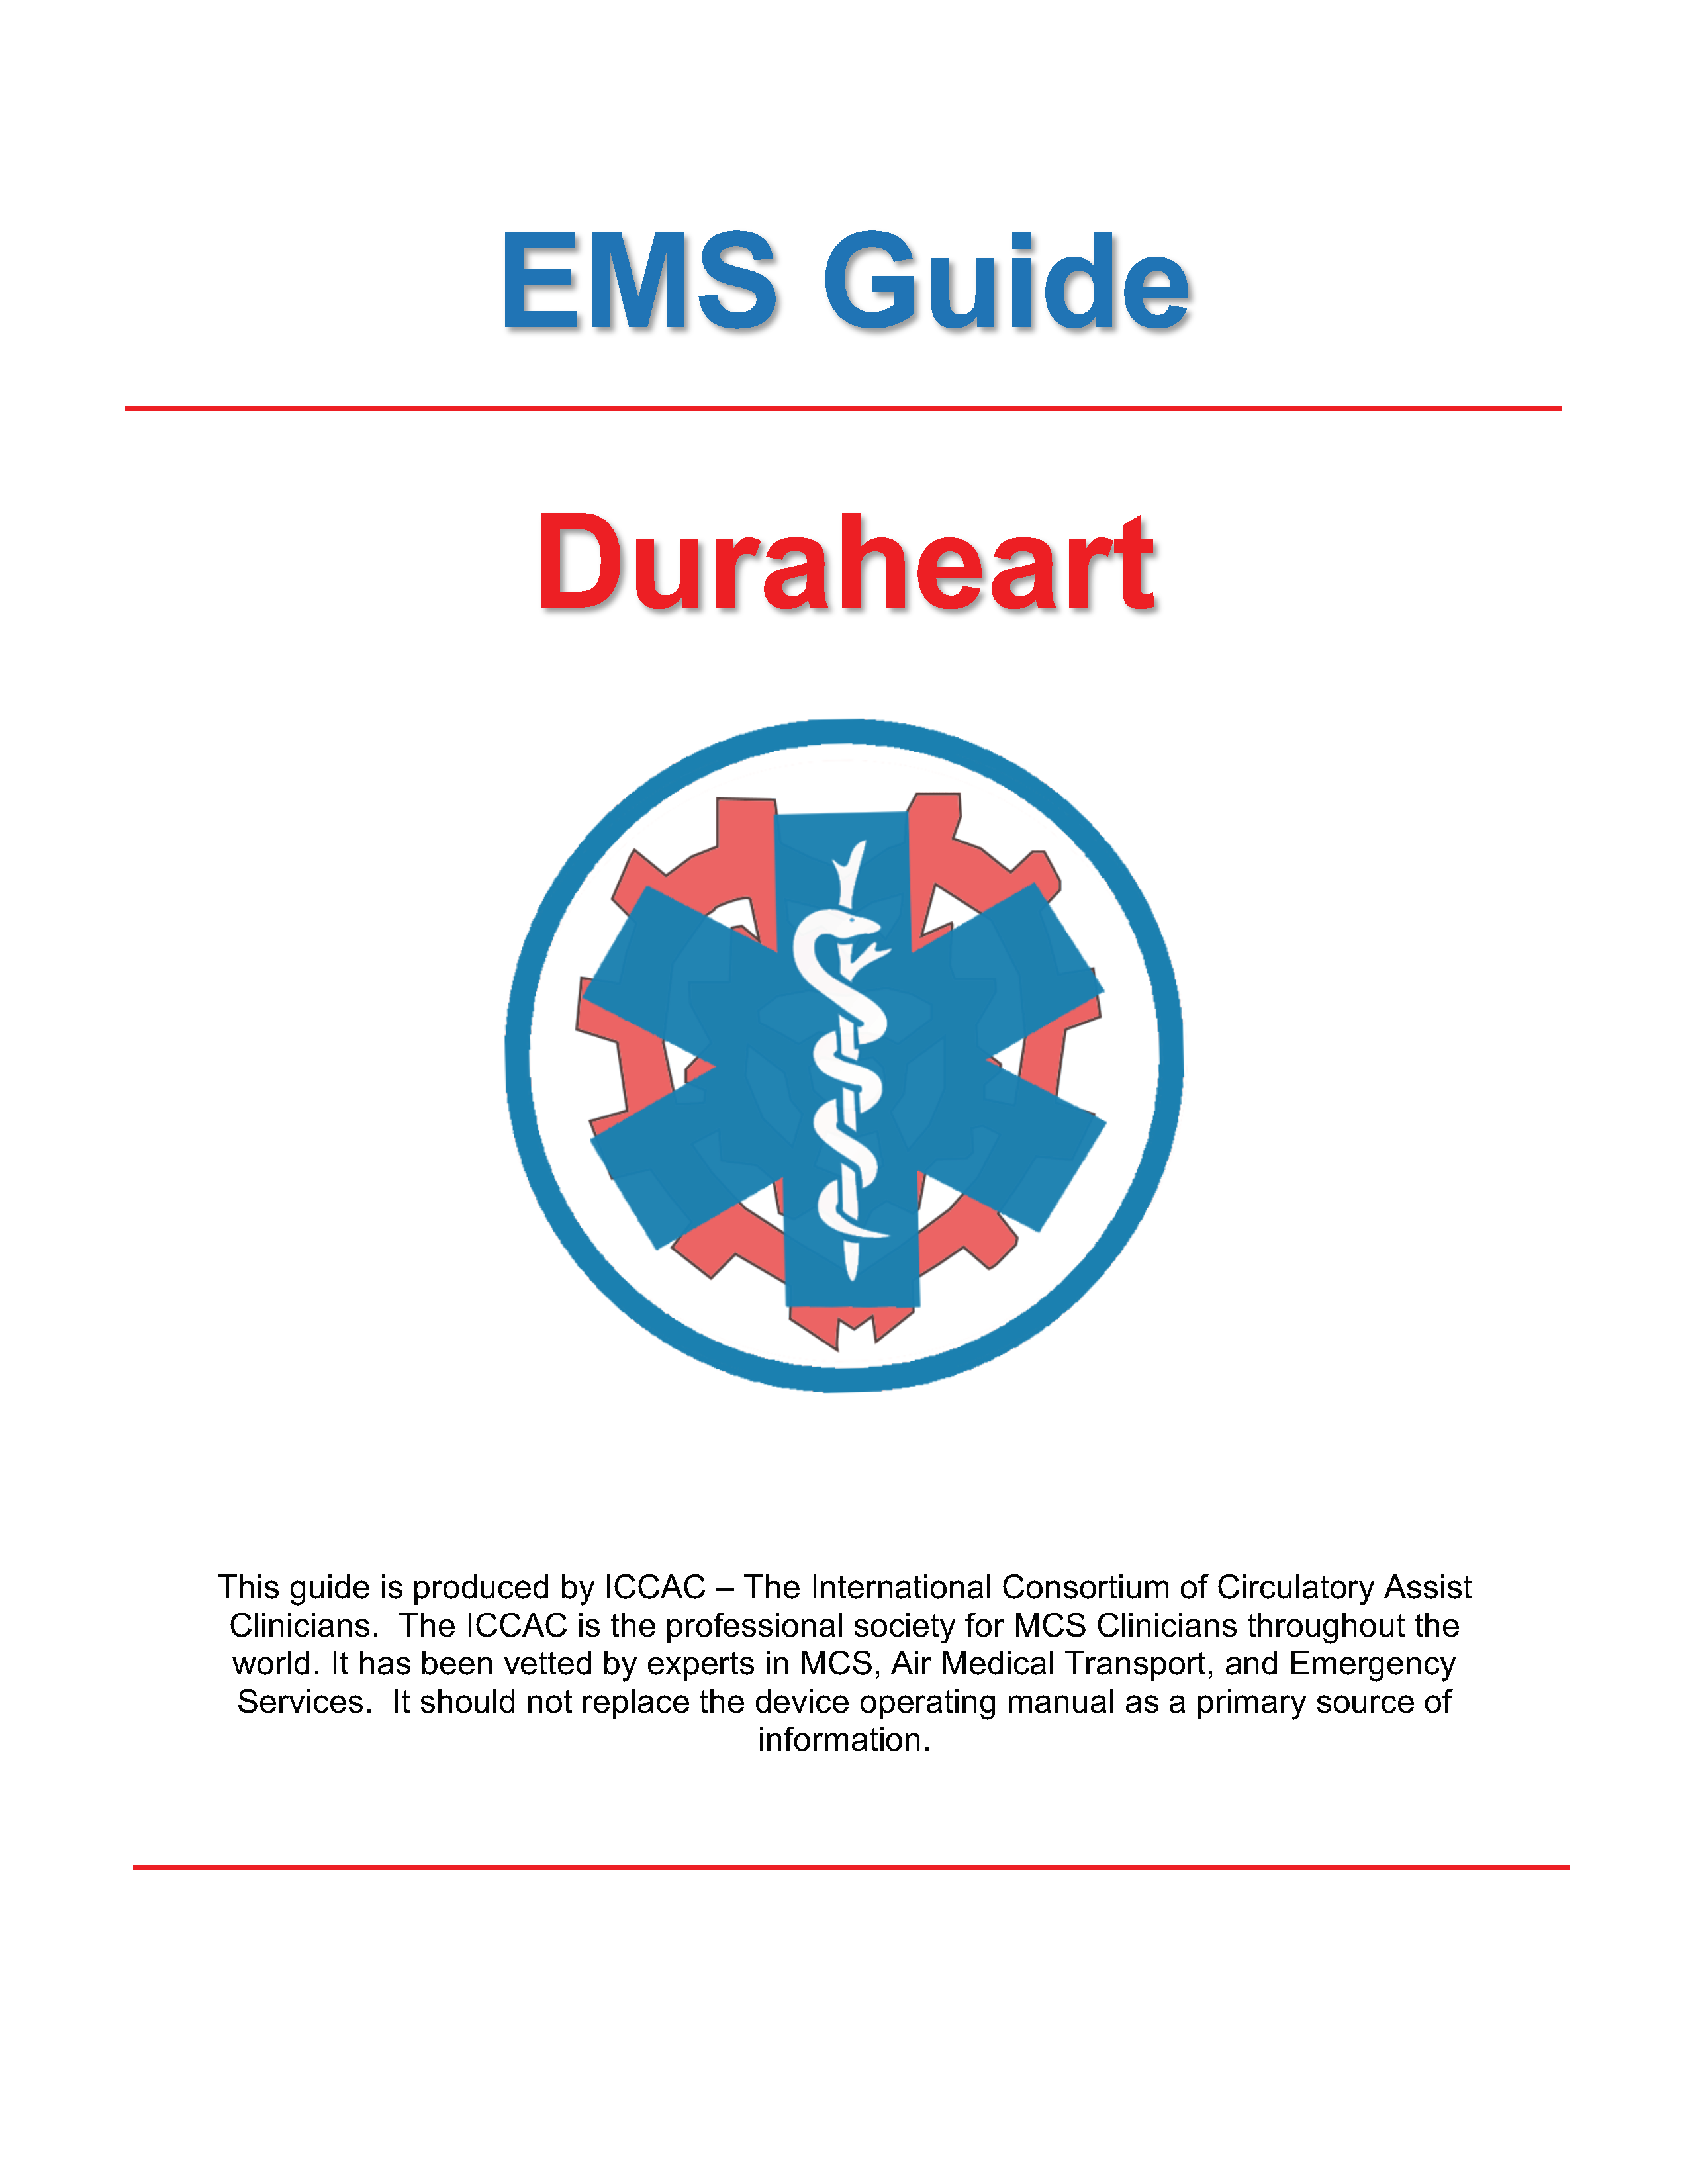 Duraheart EMS cover.png